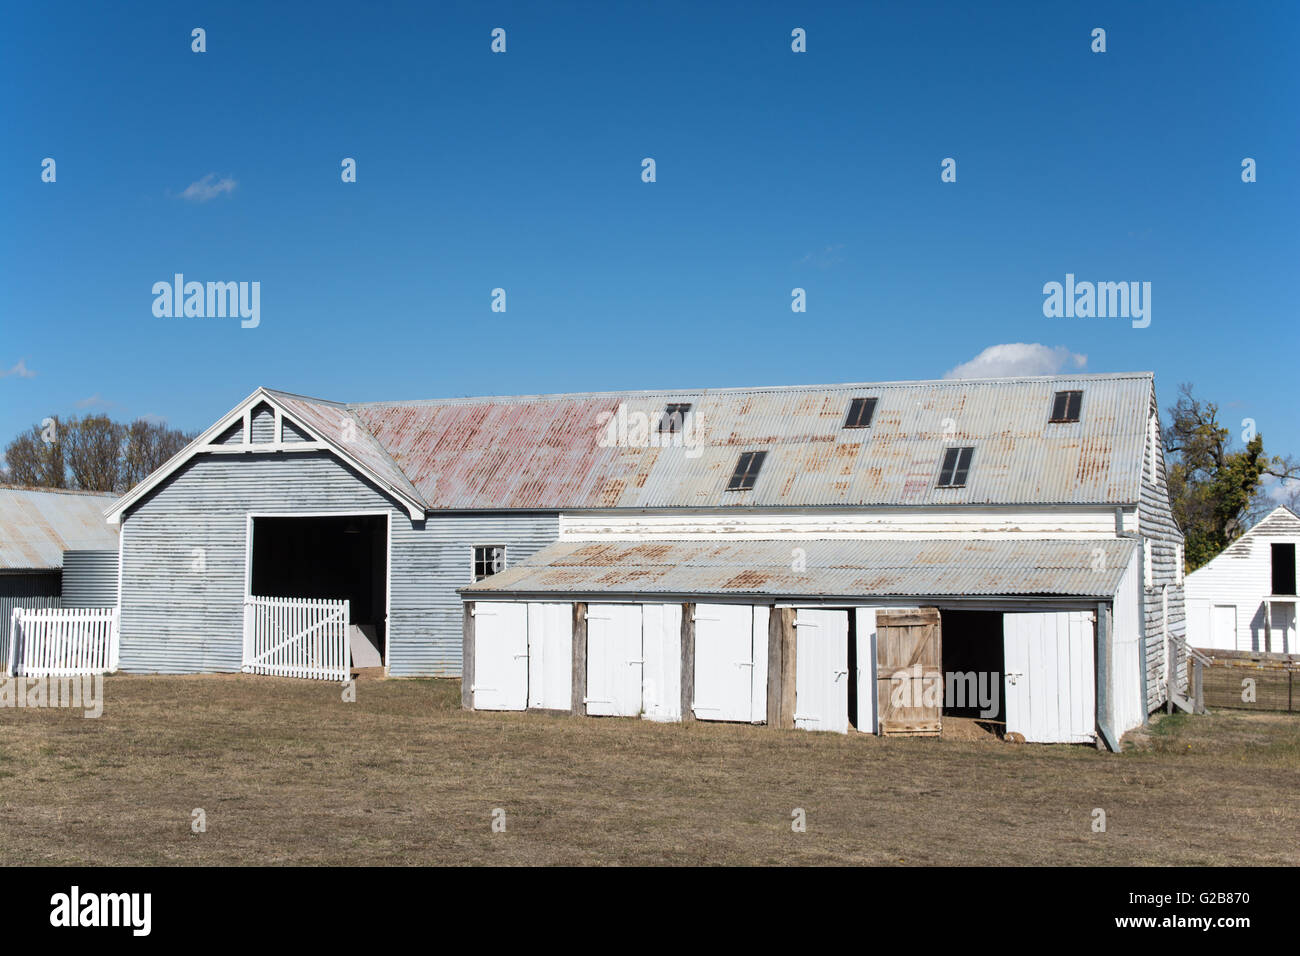 Stables and Coach House c1910 at Saumarez, a National Trust property, Armidale NSW Australia. - Stock Image